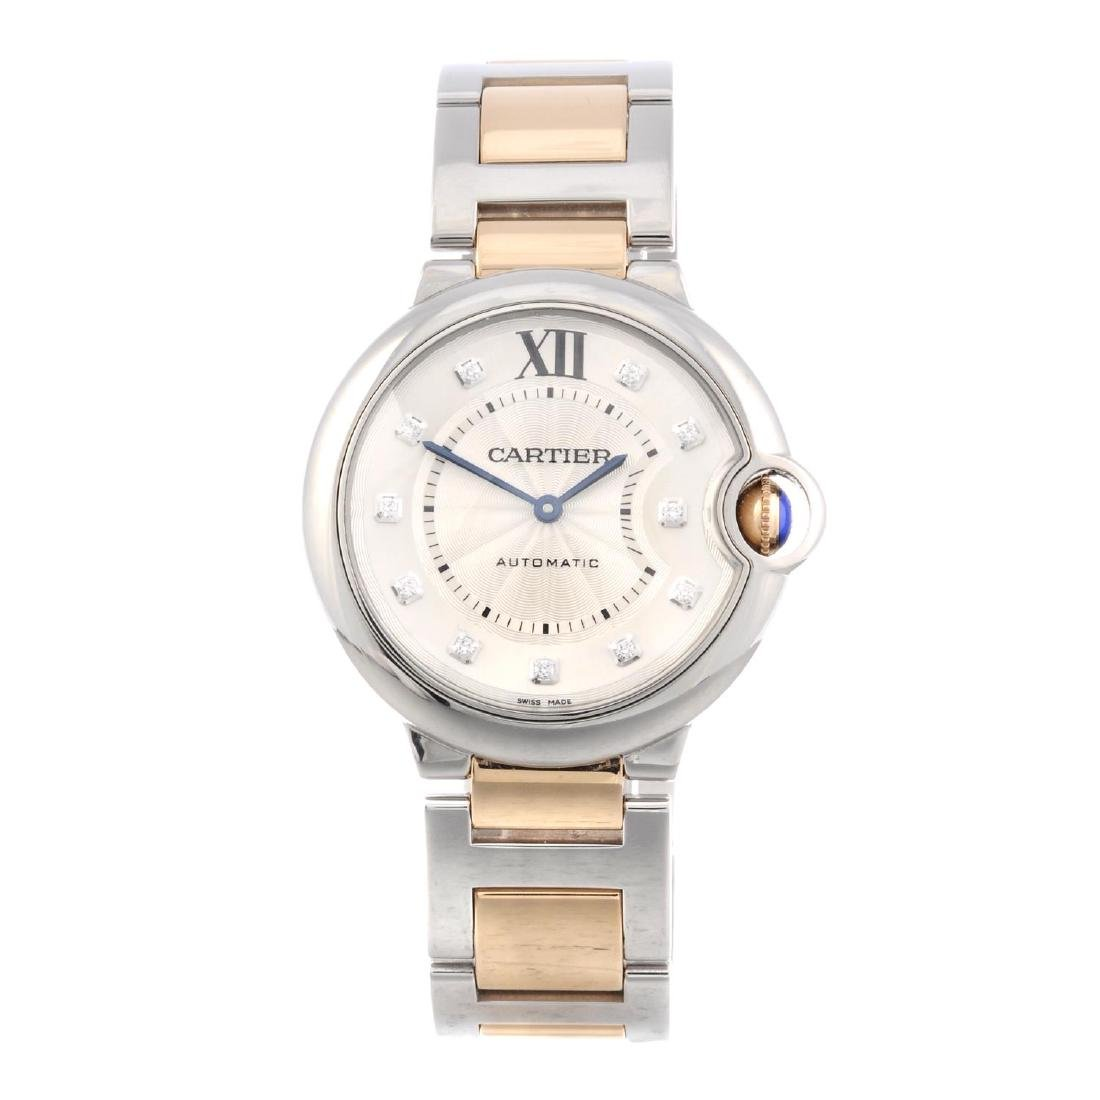 CARTIER - a Ballon Bleu bracelet watch. Stainless steel